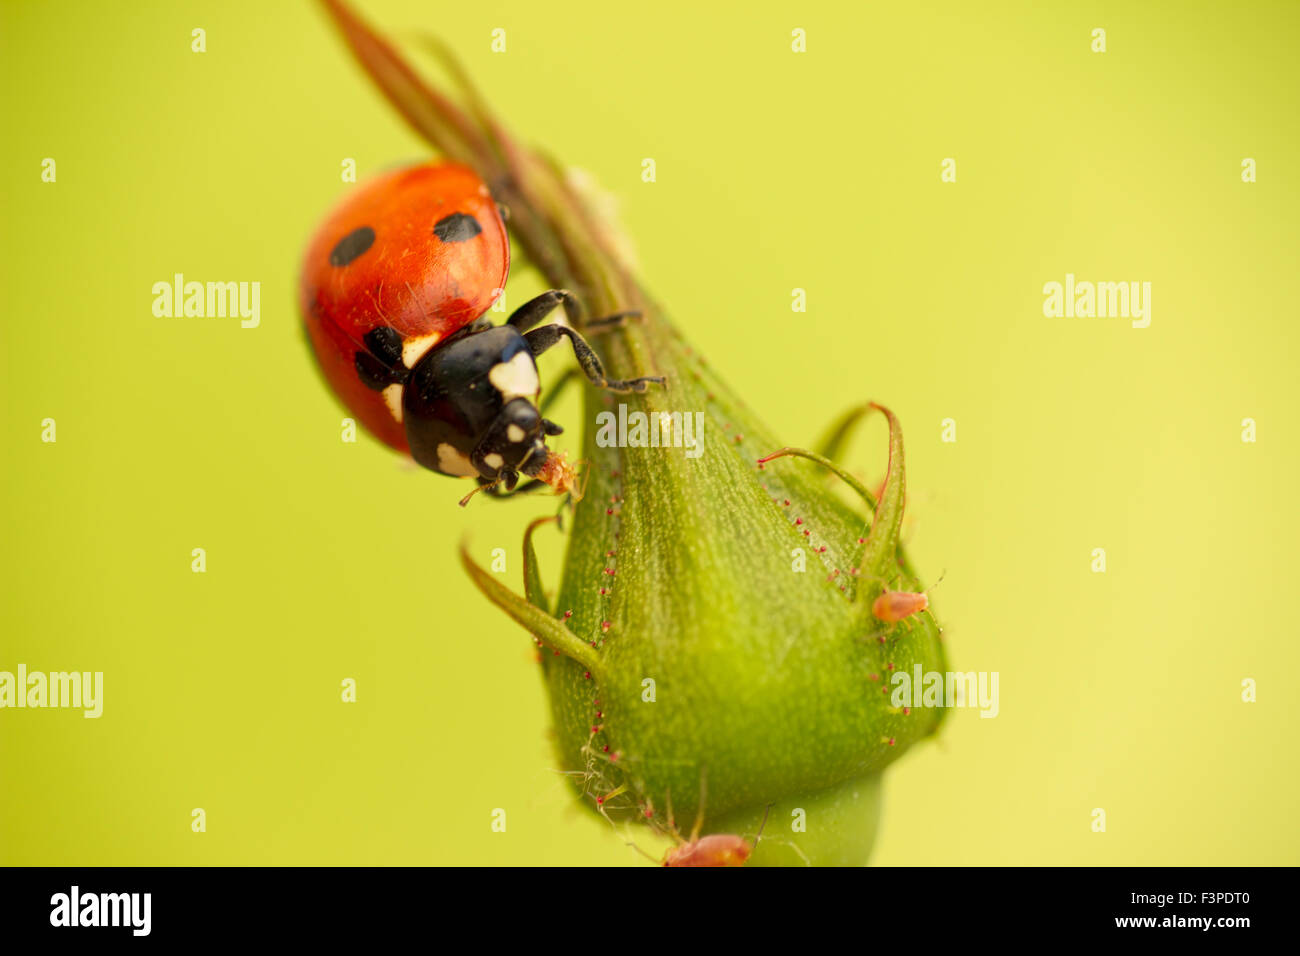 Ladybug attack aphids - Stock Image